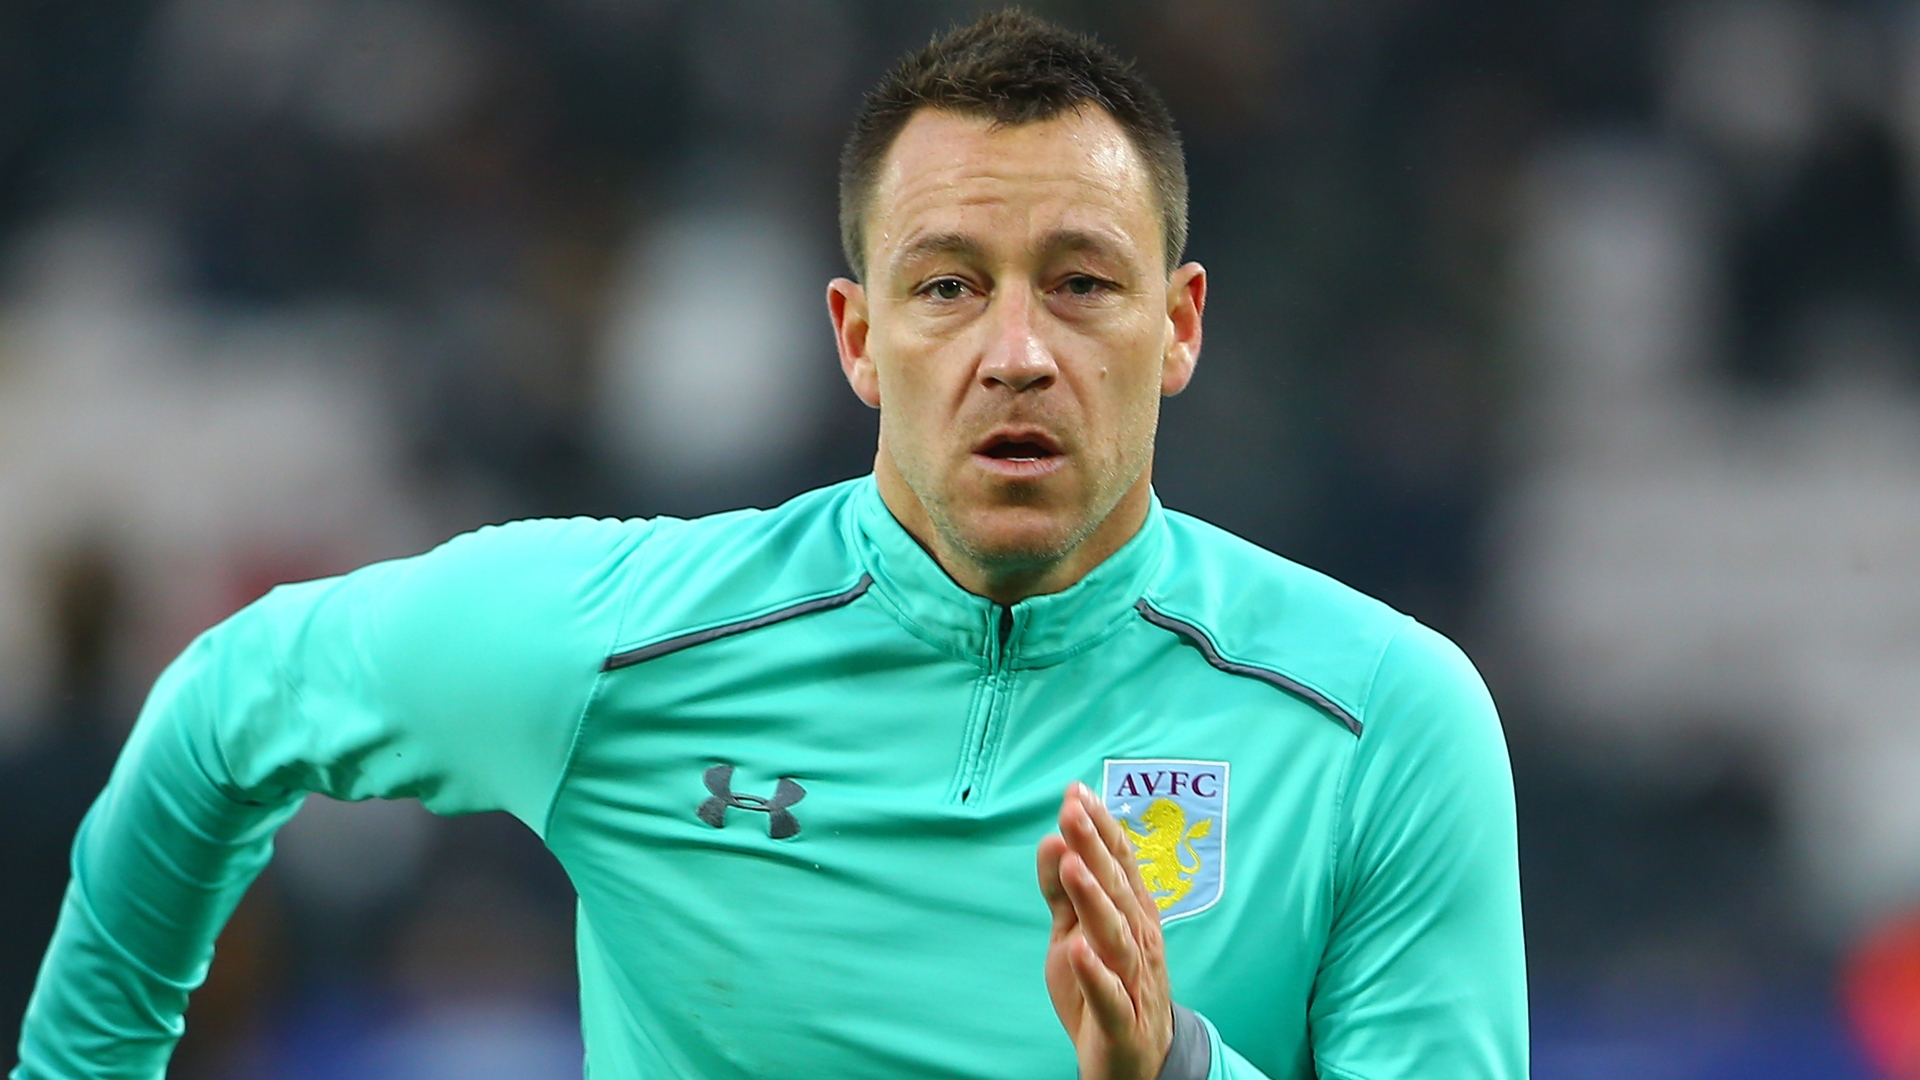 Maurizio Sarri confirms he wants John Terry as coach